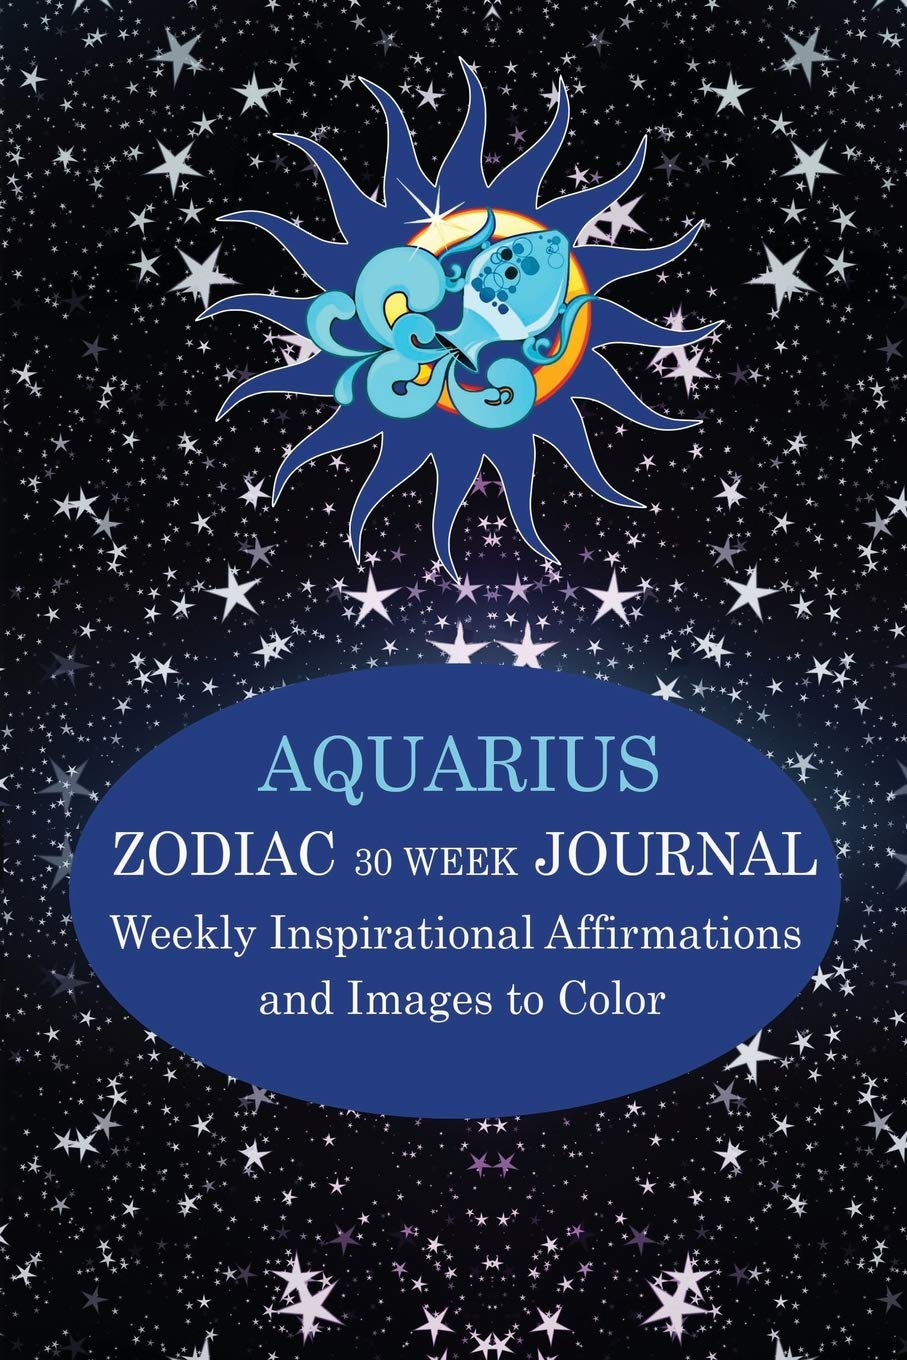 The moon is in Aquarius today.